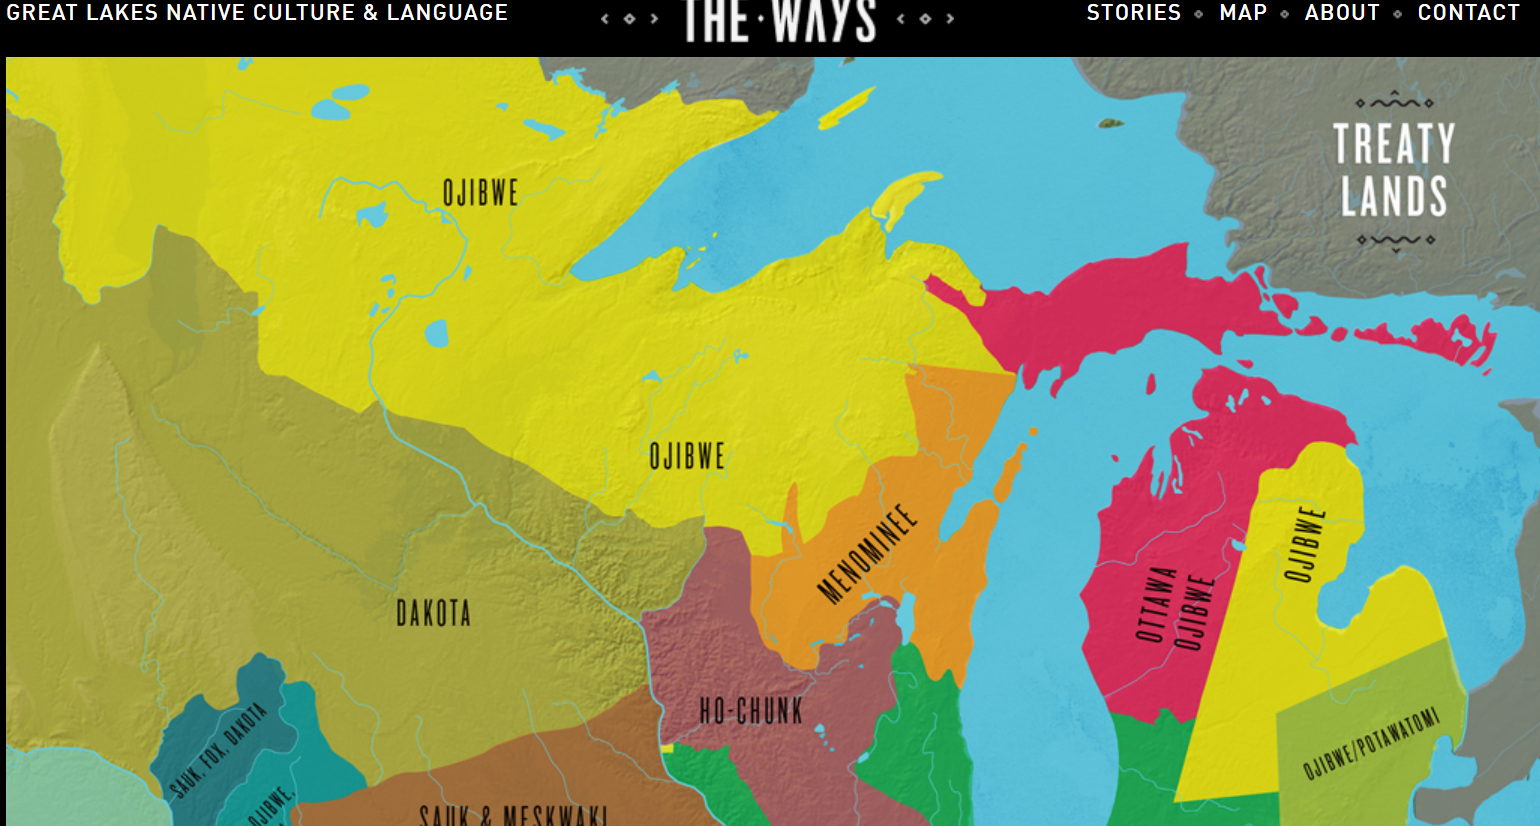 the way great lakes map and stories